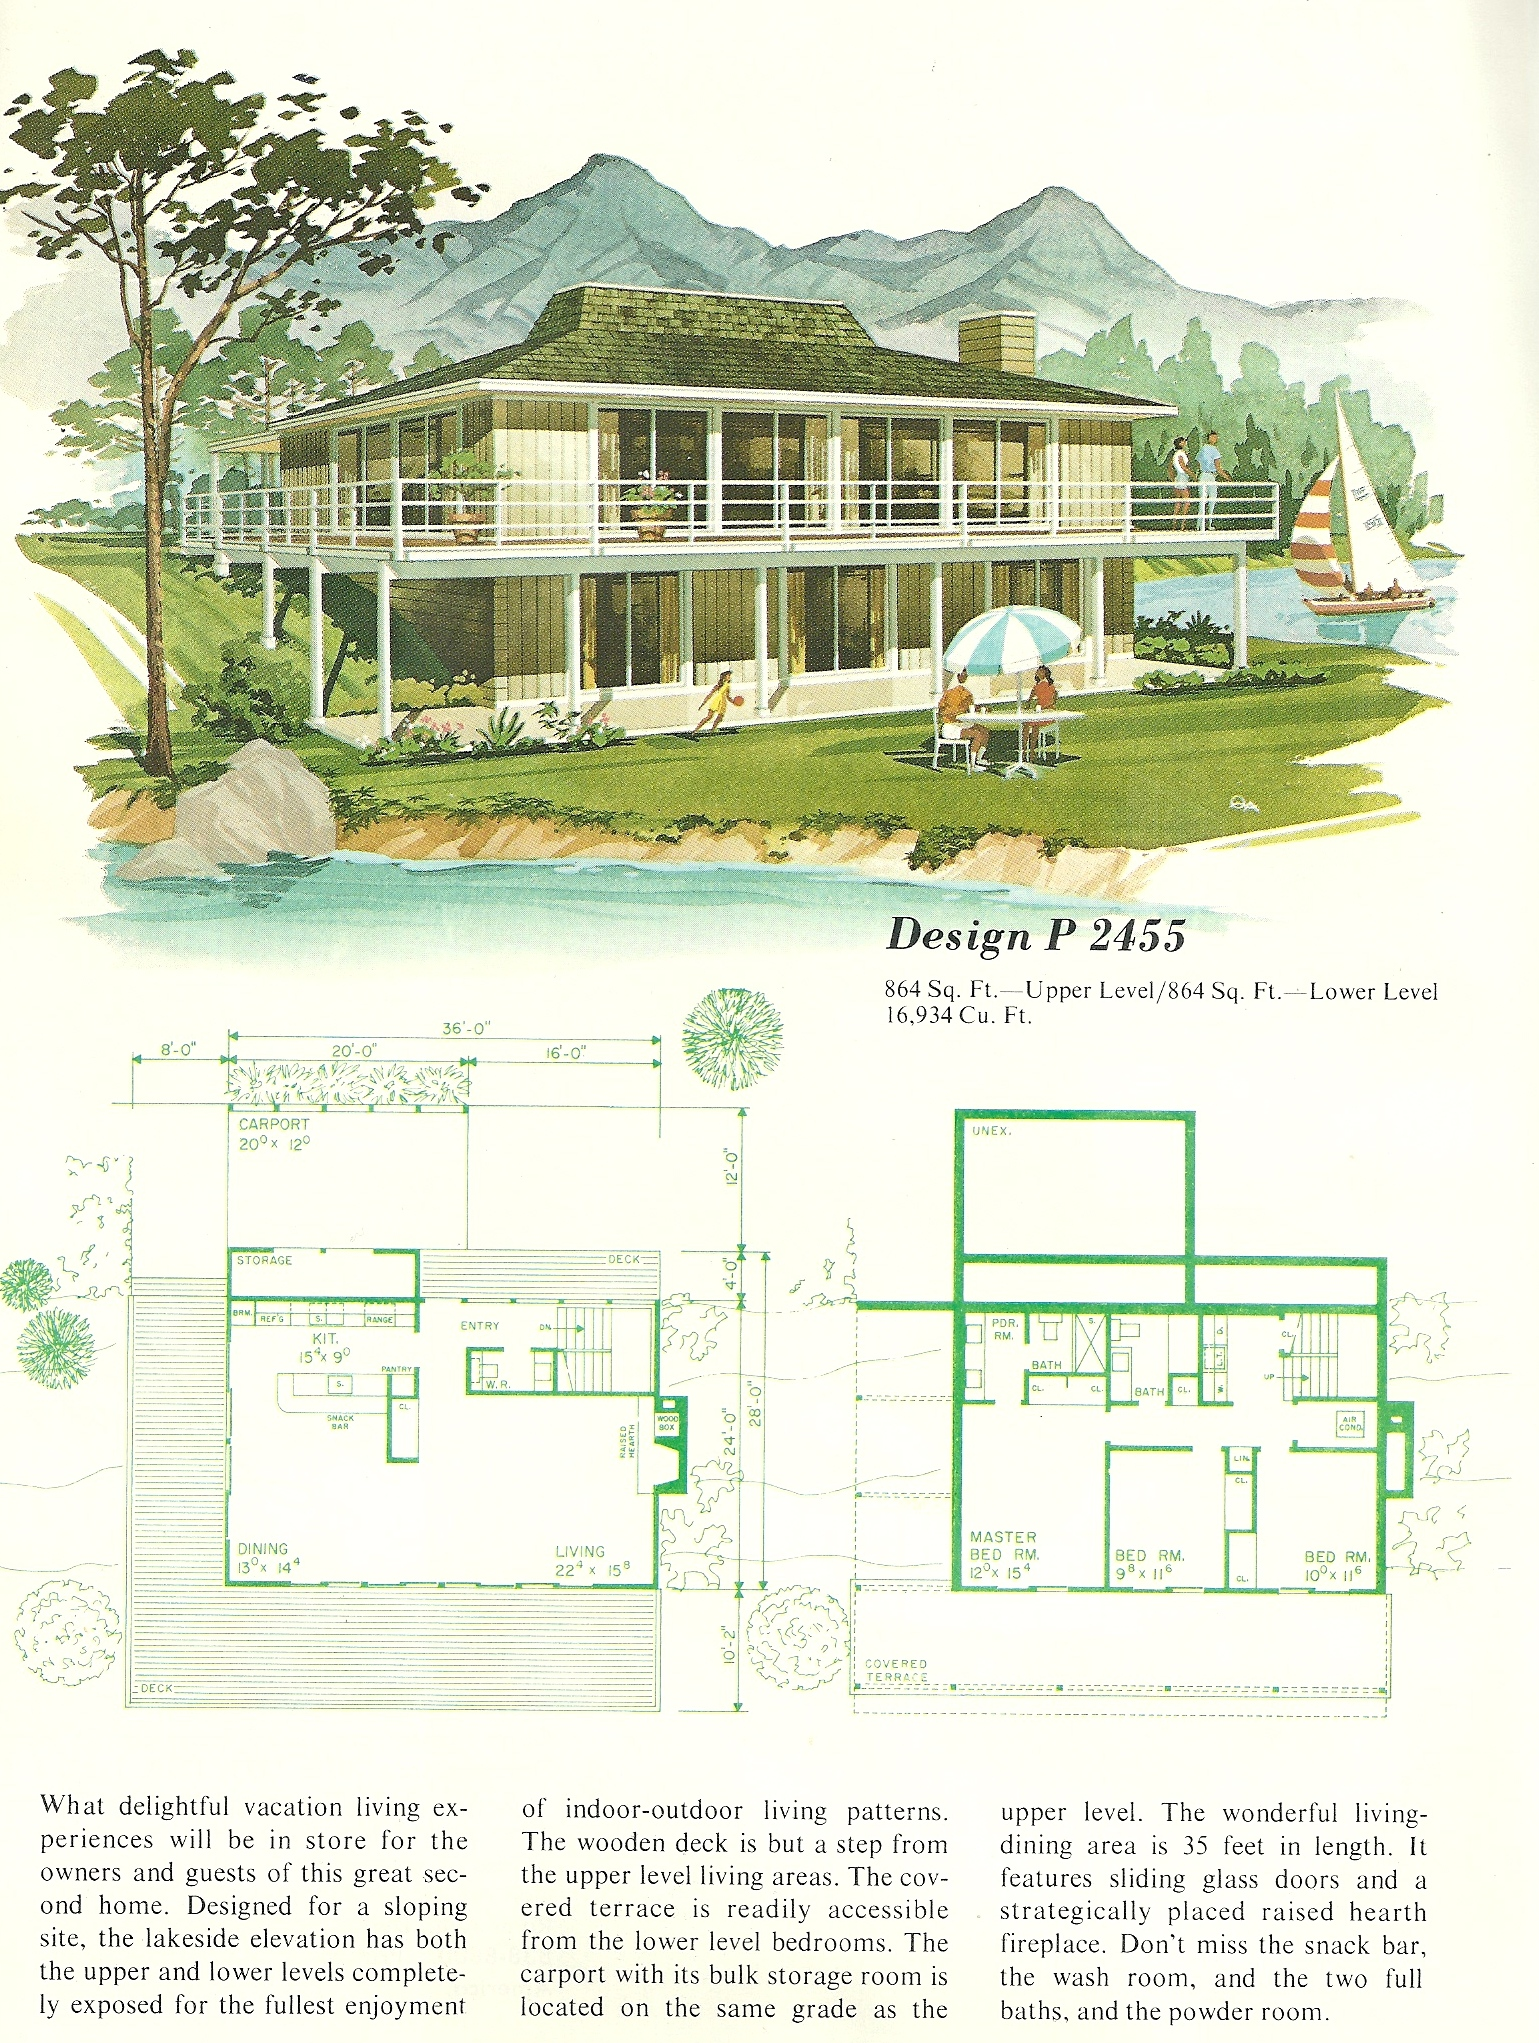 Vintage house plans vacation homes 2455 antique alter ego for Vacation home house plans